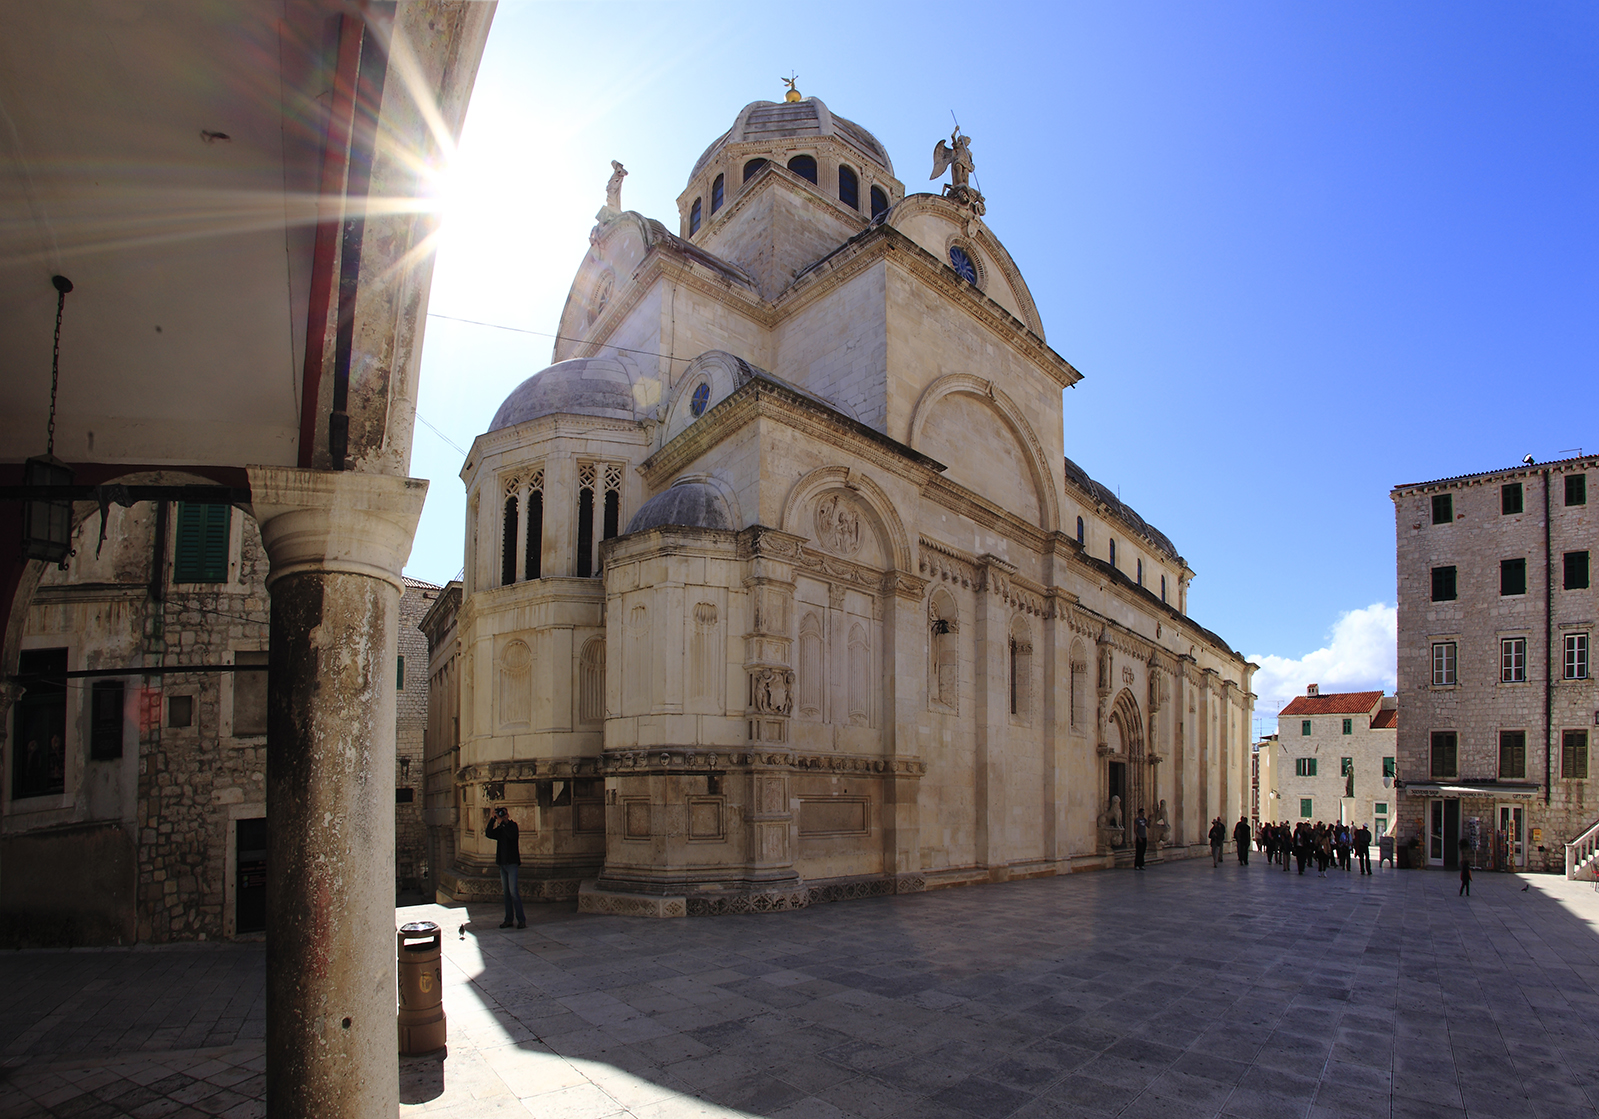 The Catherdal of St. James Croatia